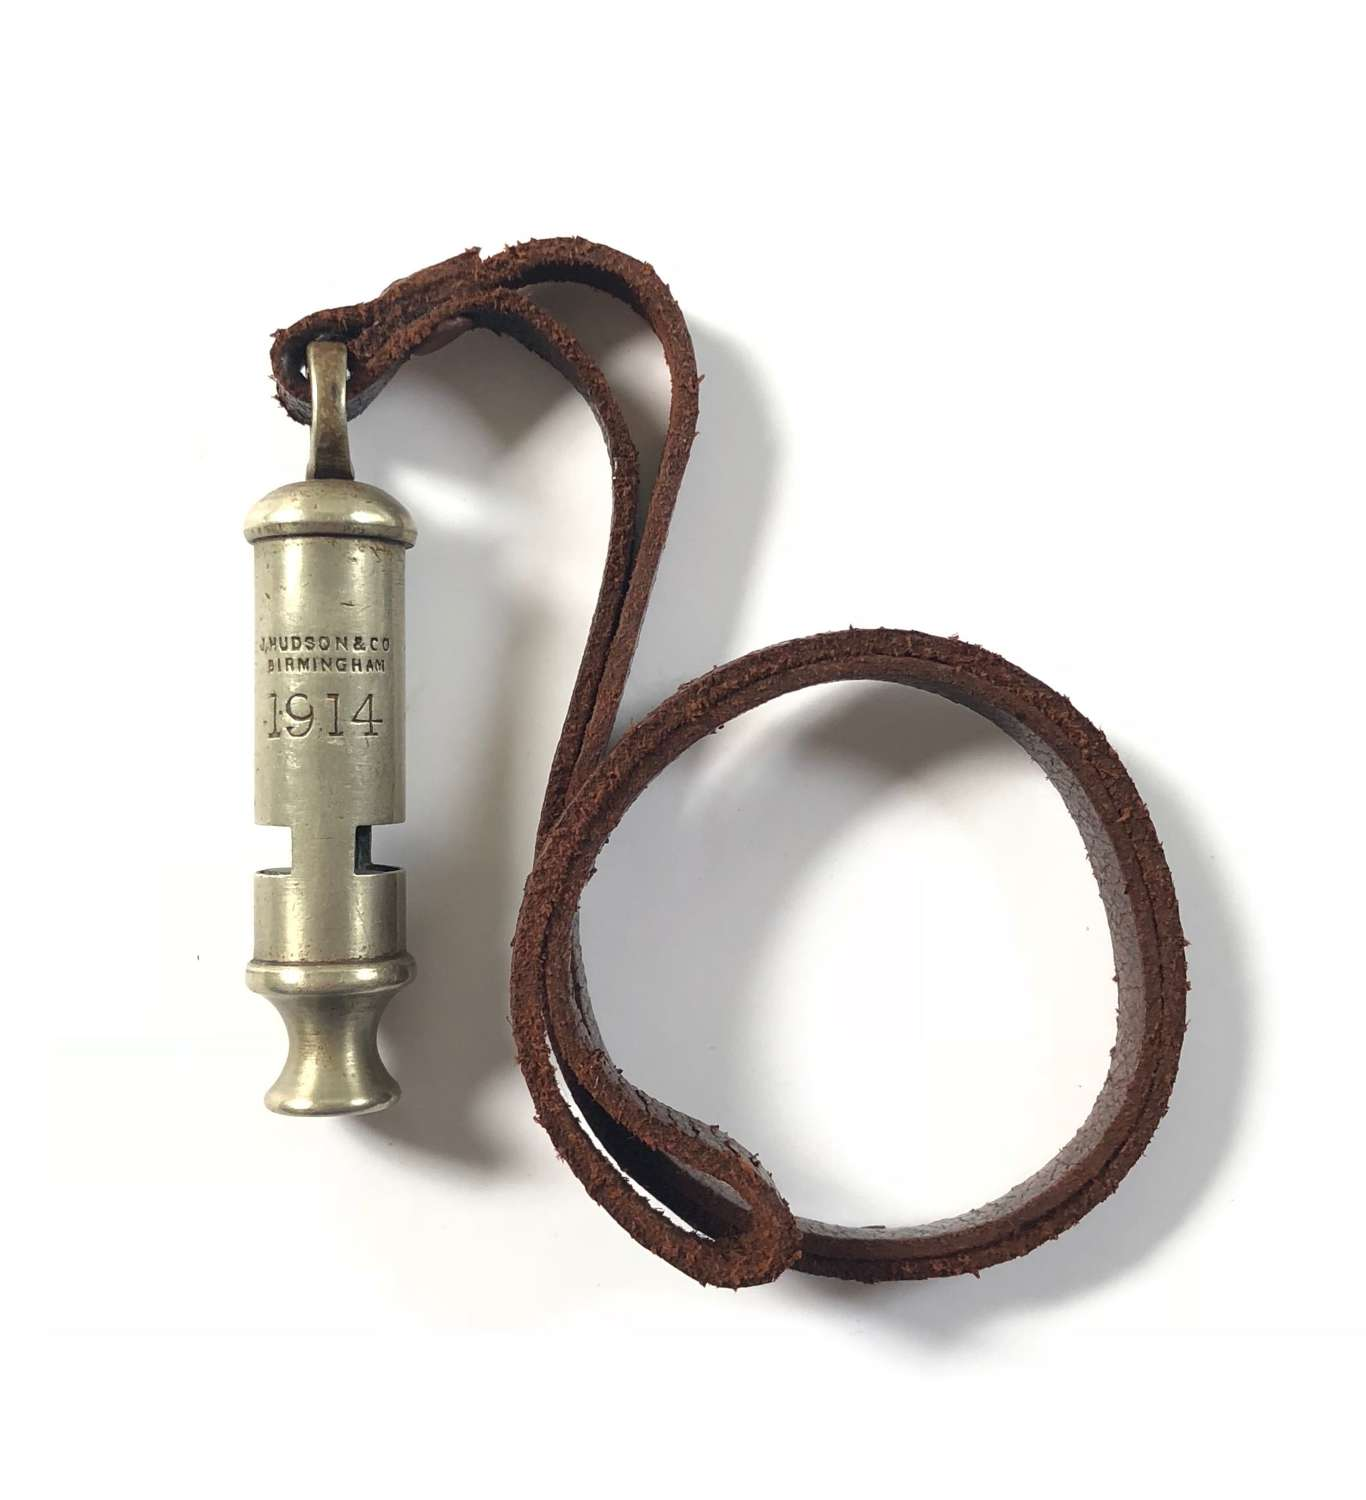 WW1 BEF 1914 Officer's Trench Whistle By Hudson.